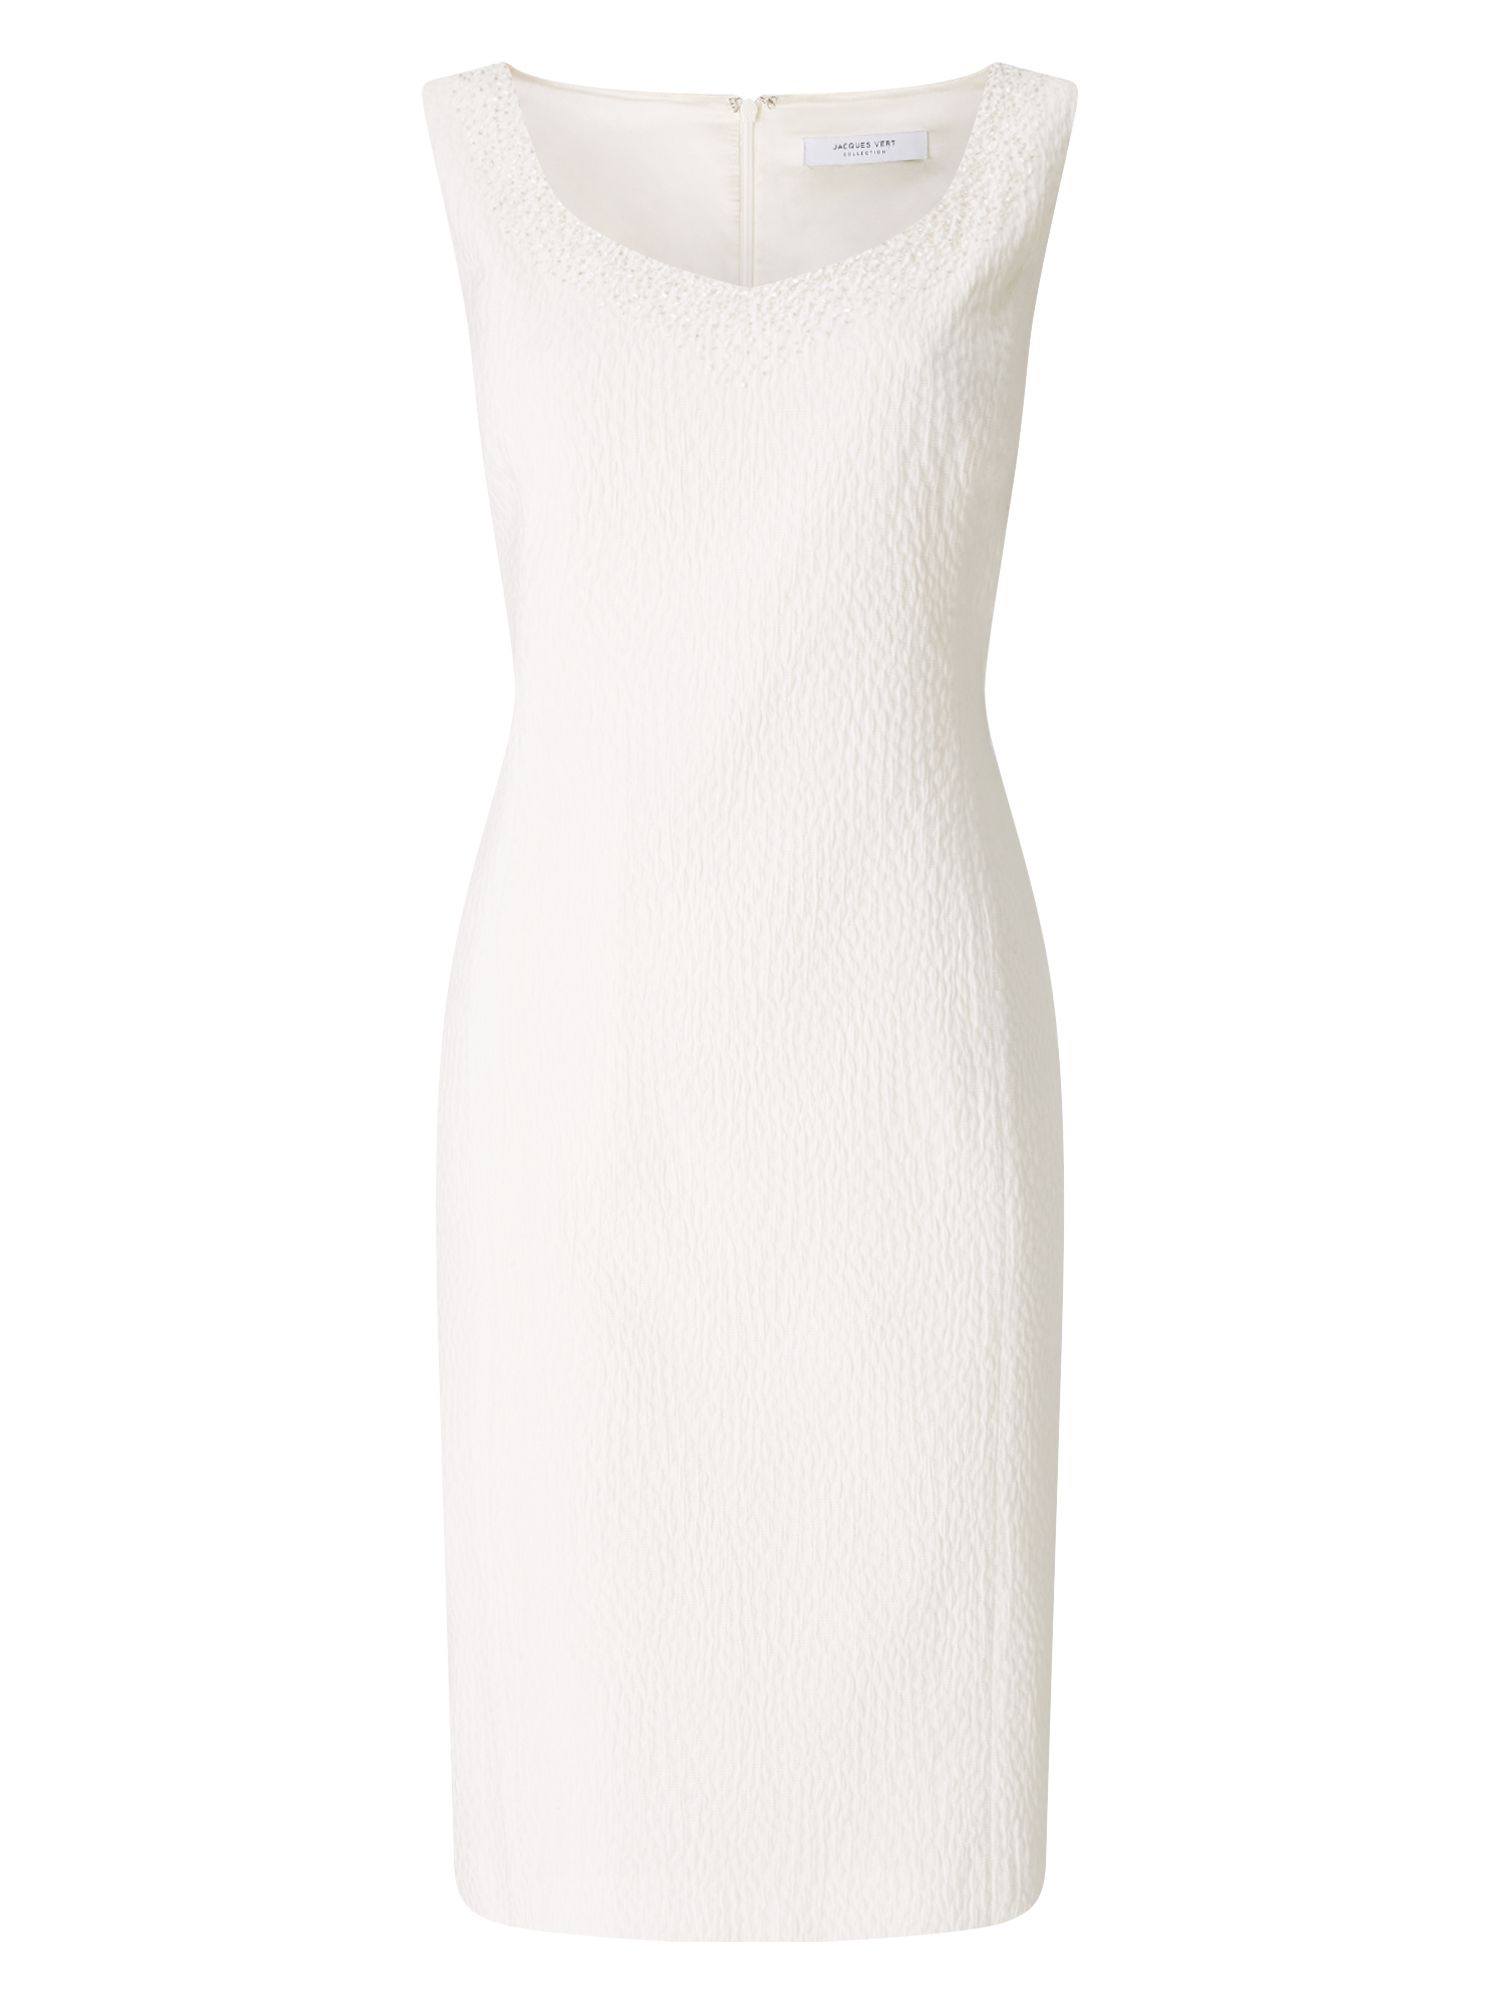 Jacques Vert Ivory Textured Dress, Neutral